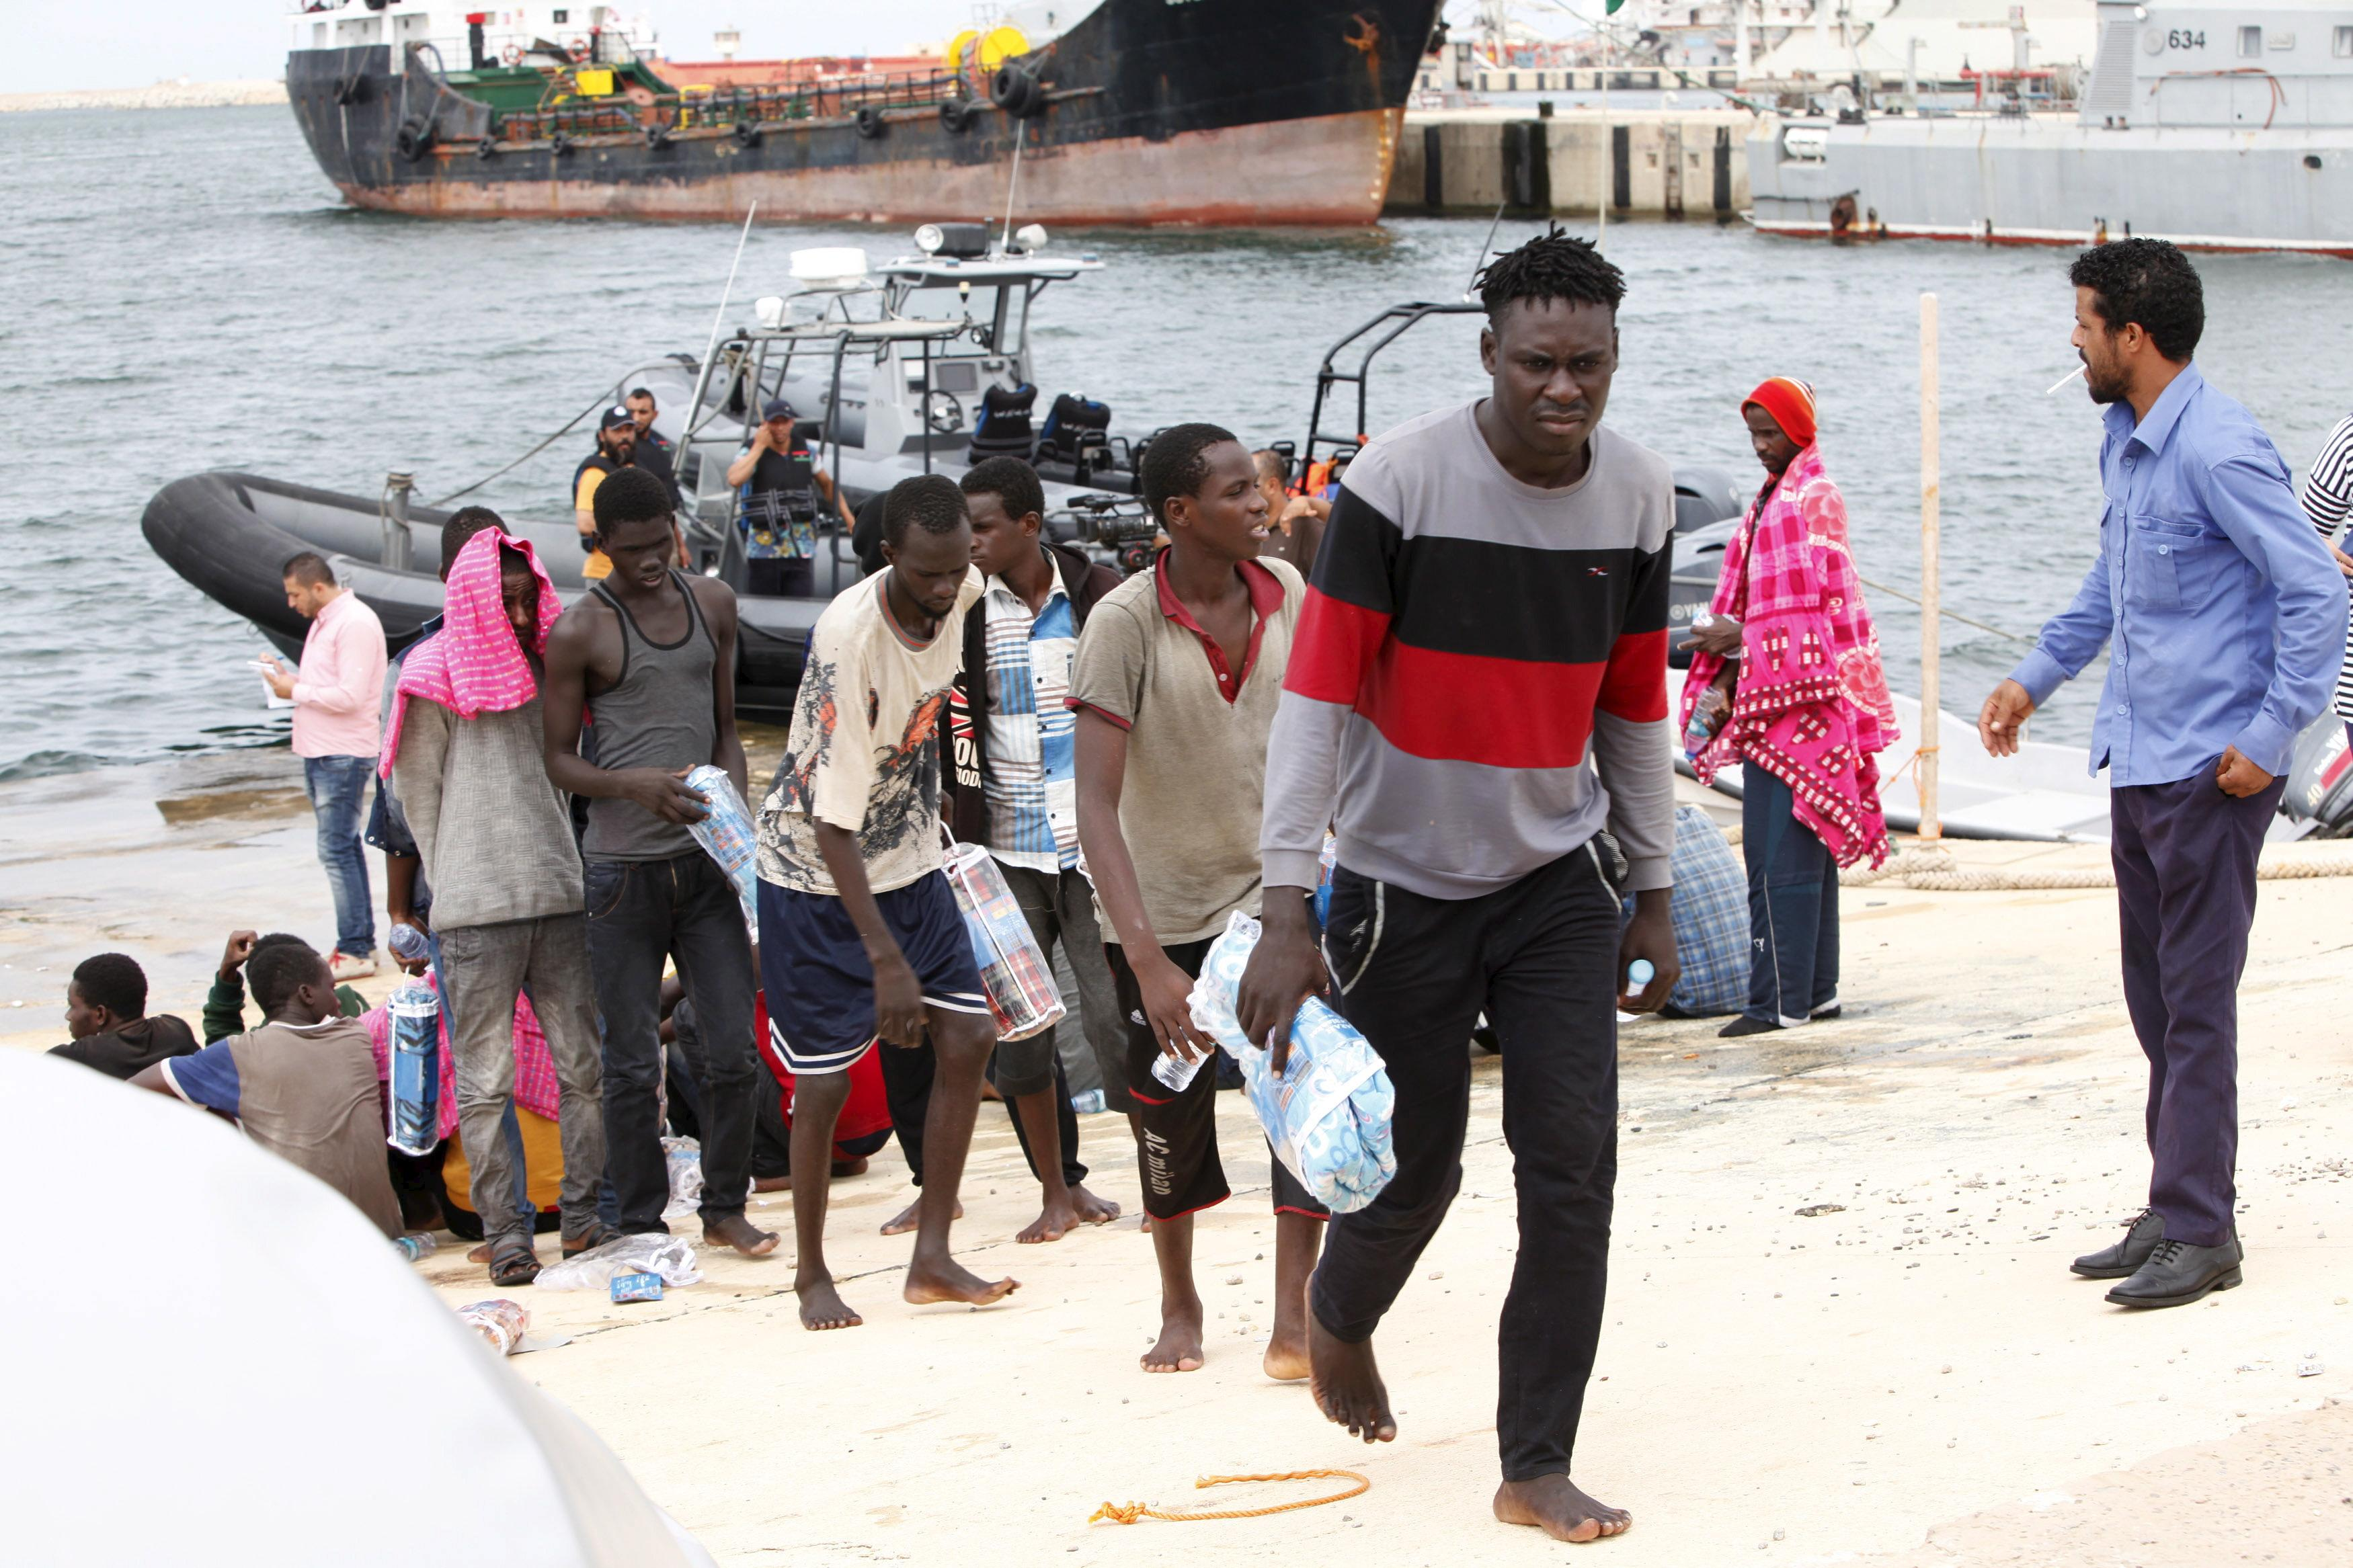 Migrants walk on to the dock in Tripoli.